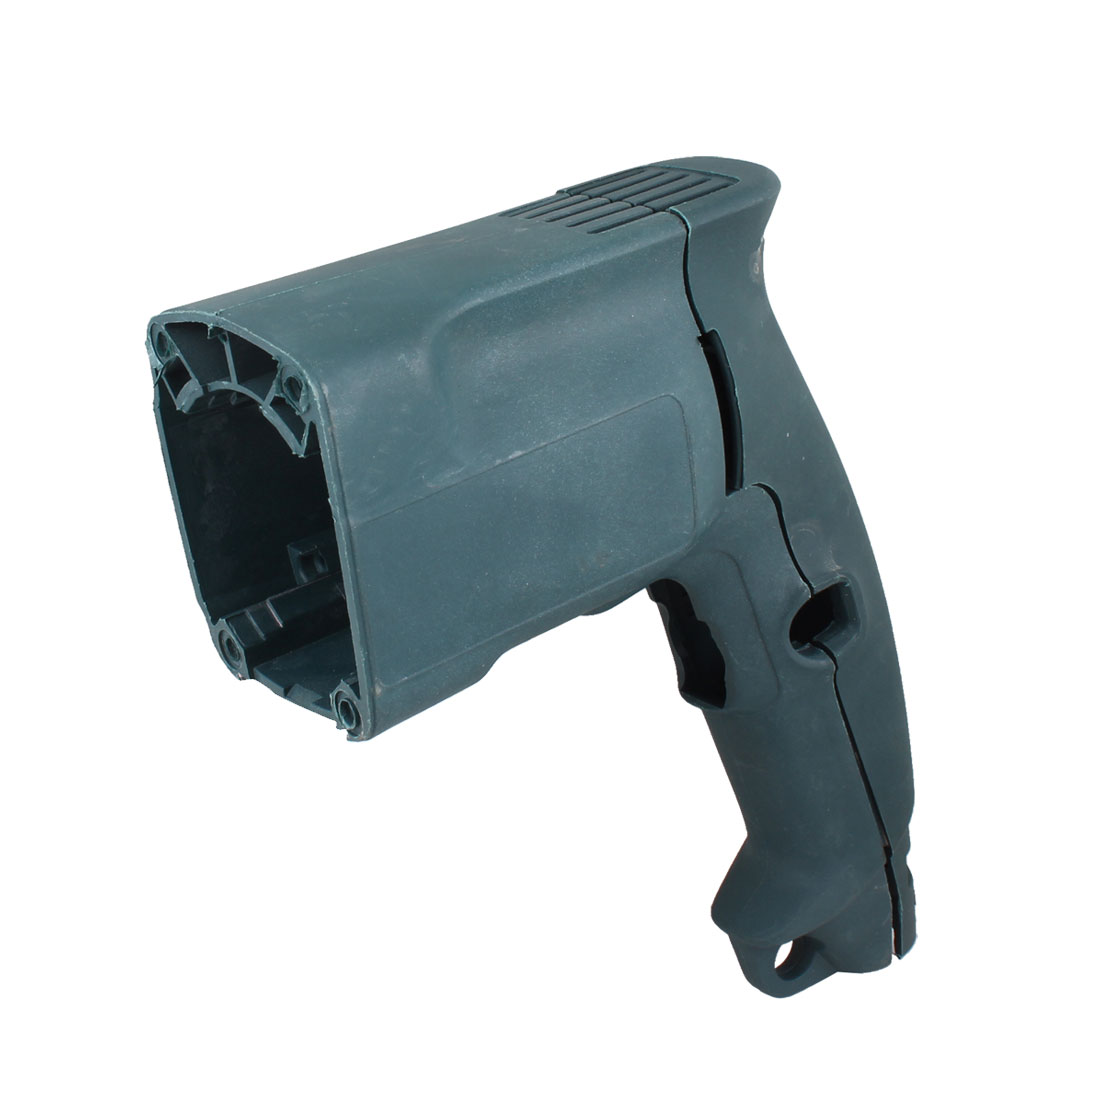 Replacement Motor Housing Handle Cover for Bosch GBH2-24 Electric Hammer